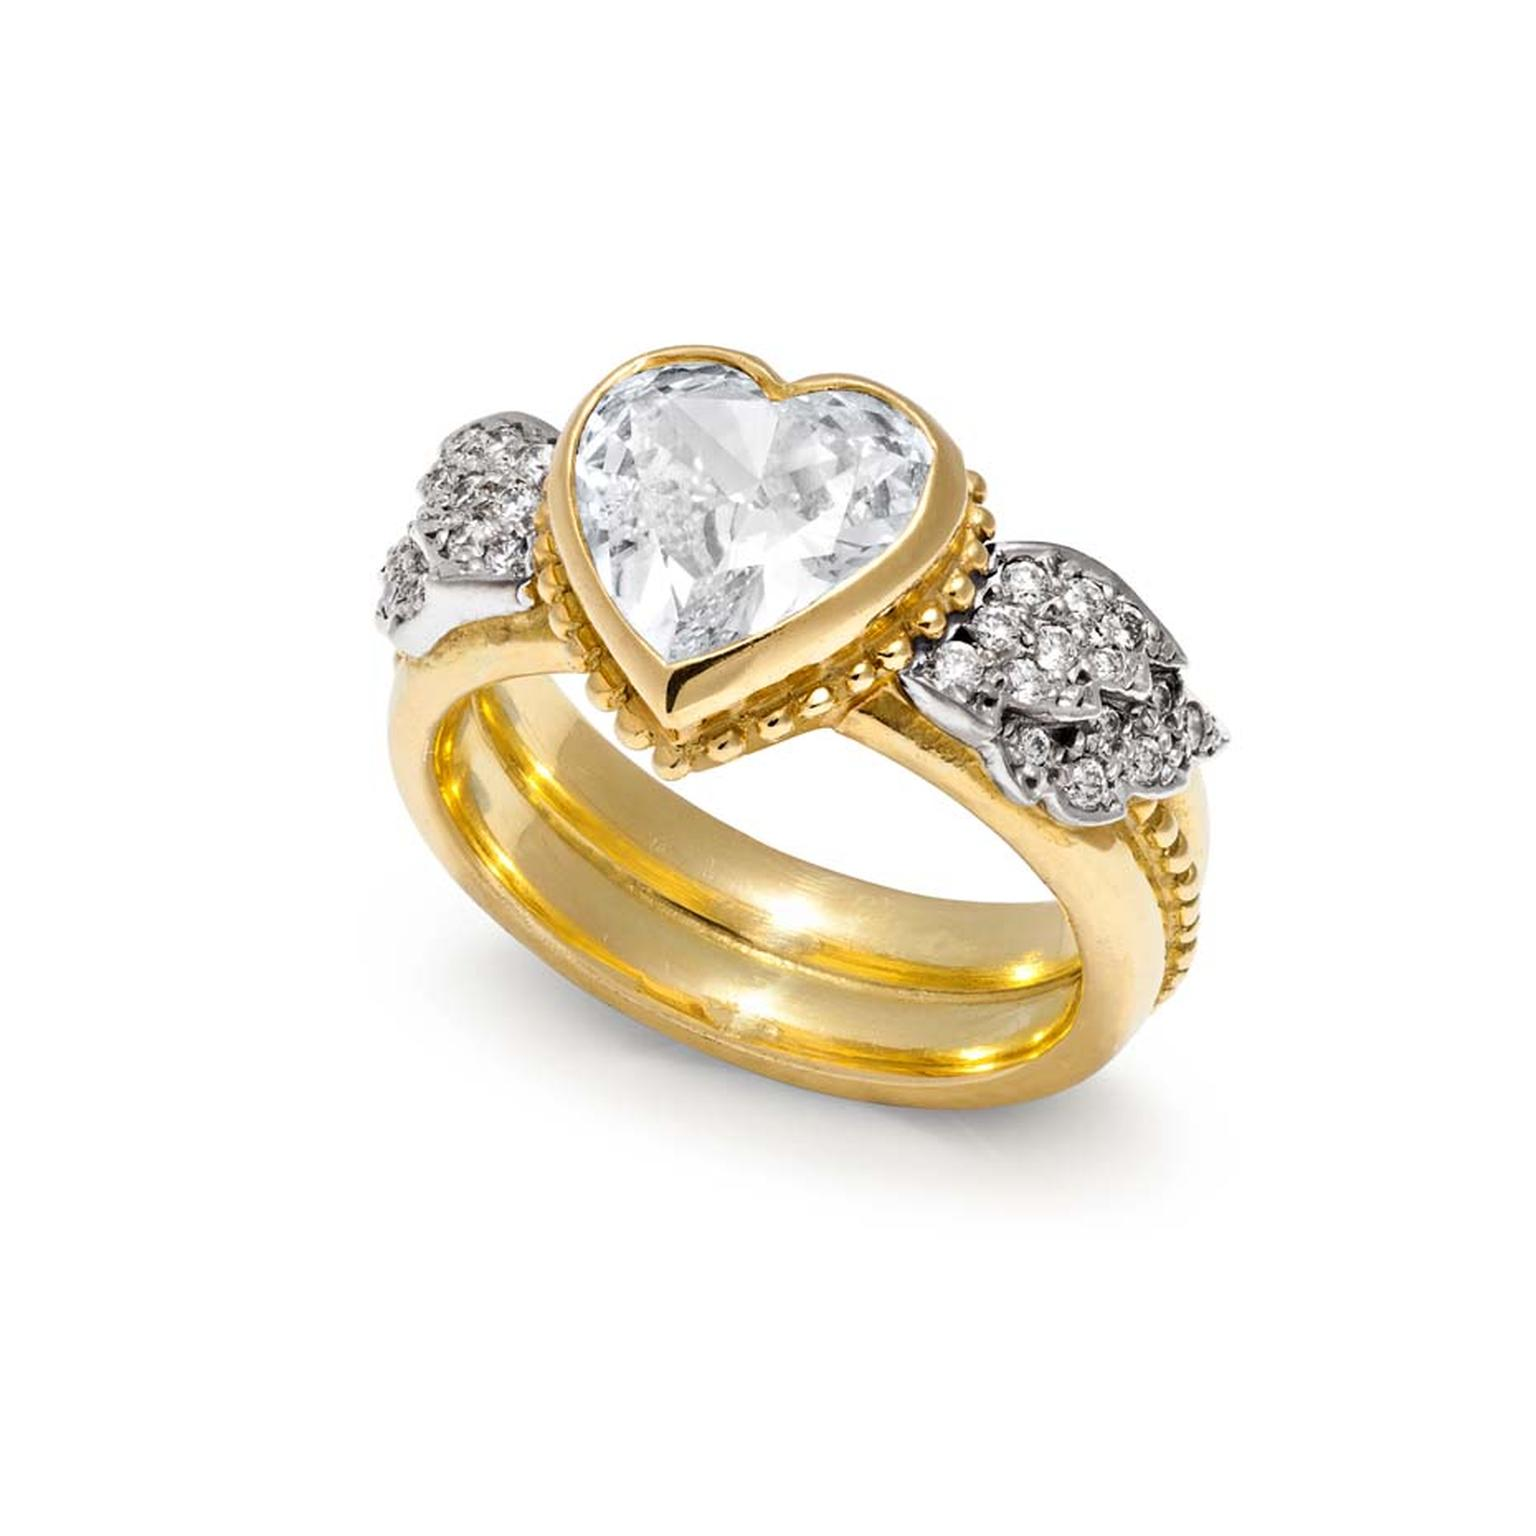 Sophie Harley London 2.50ct heart-shaped diamond engagement ring set in yellow gold with pavé diamond wings (£63,000).